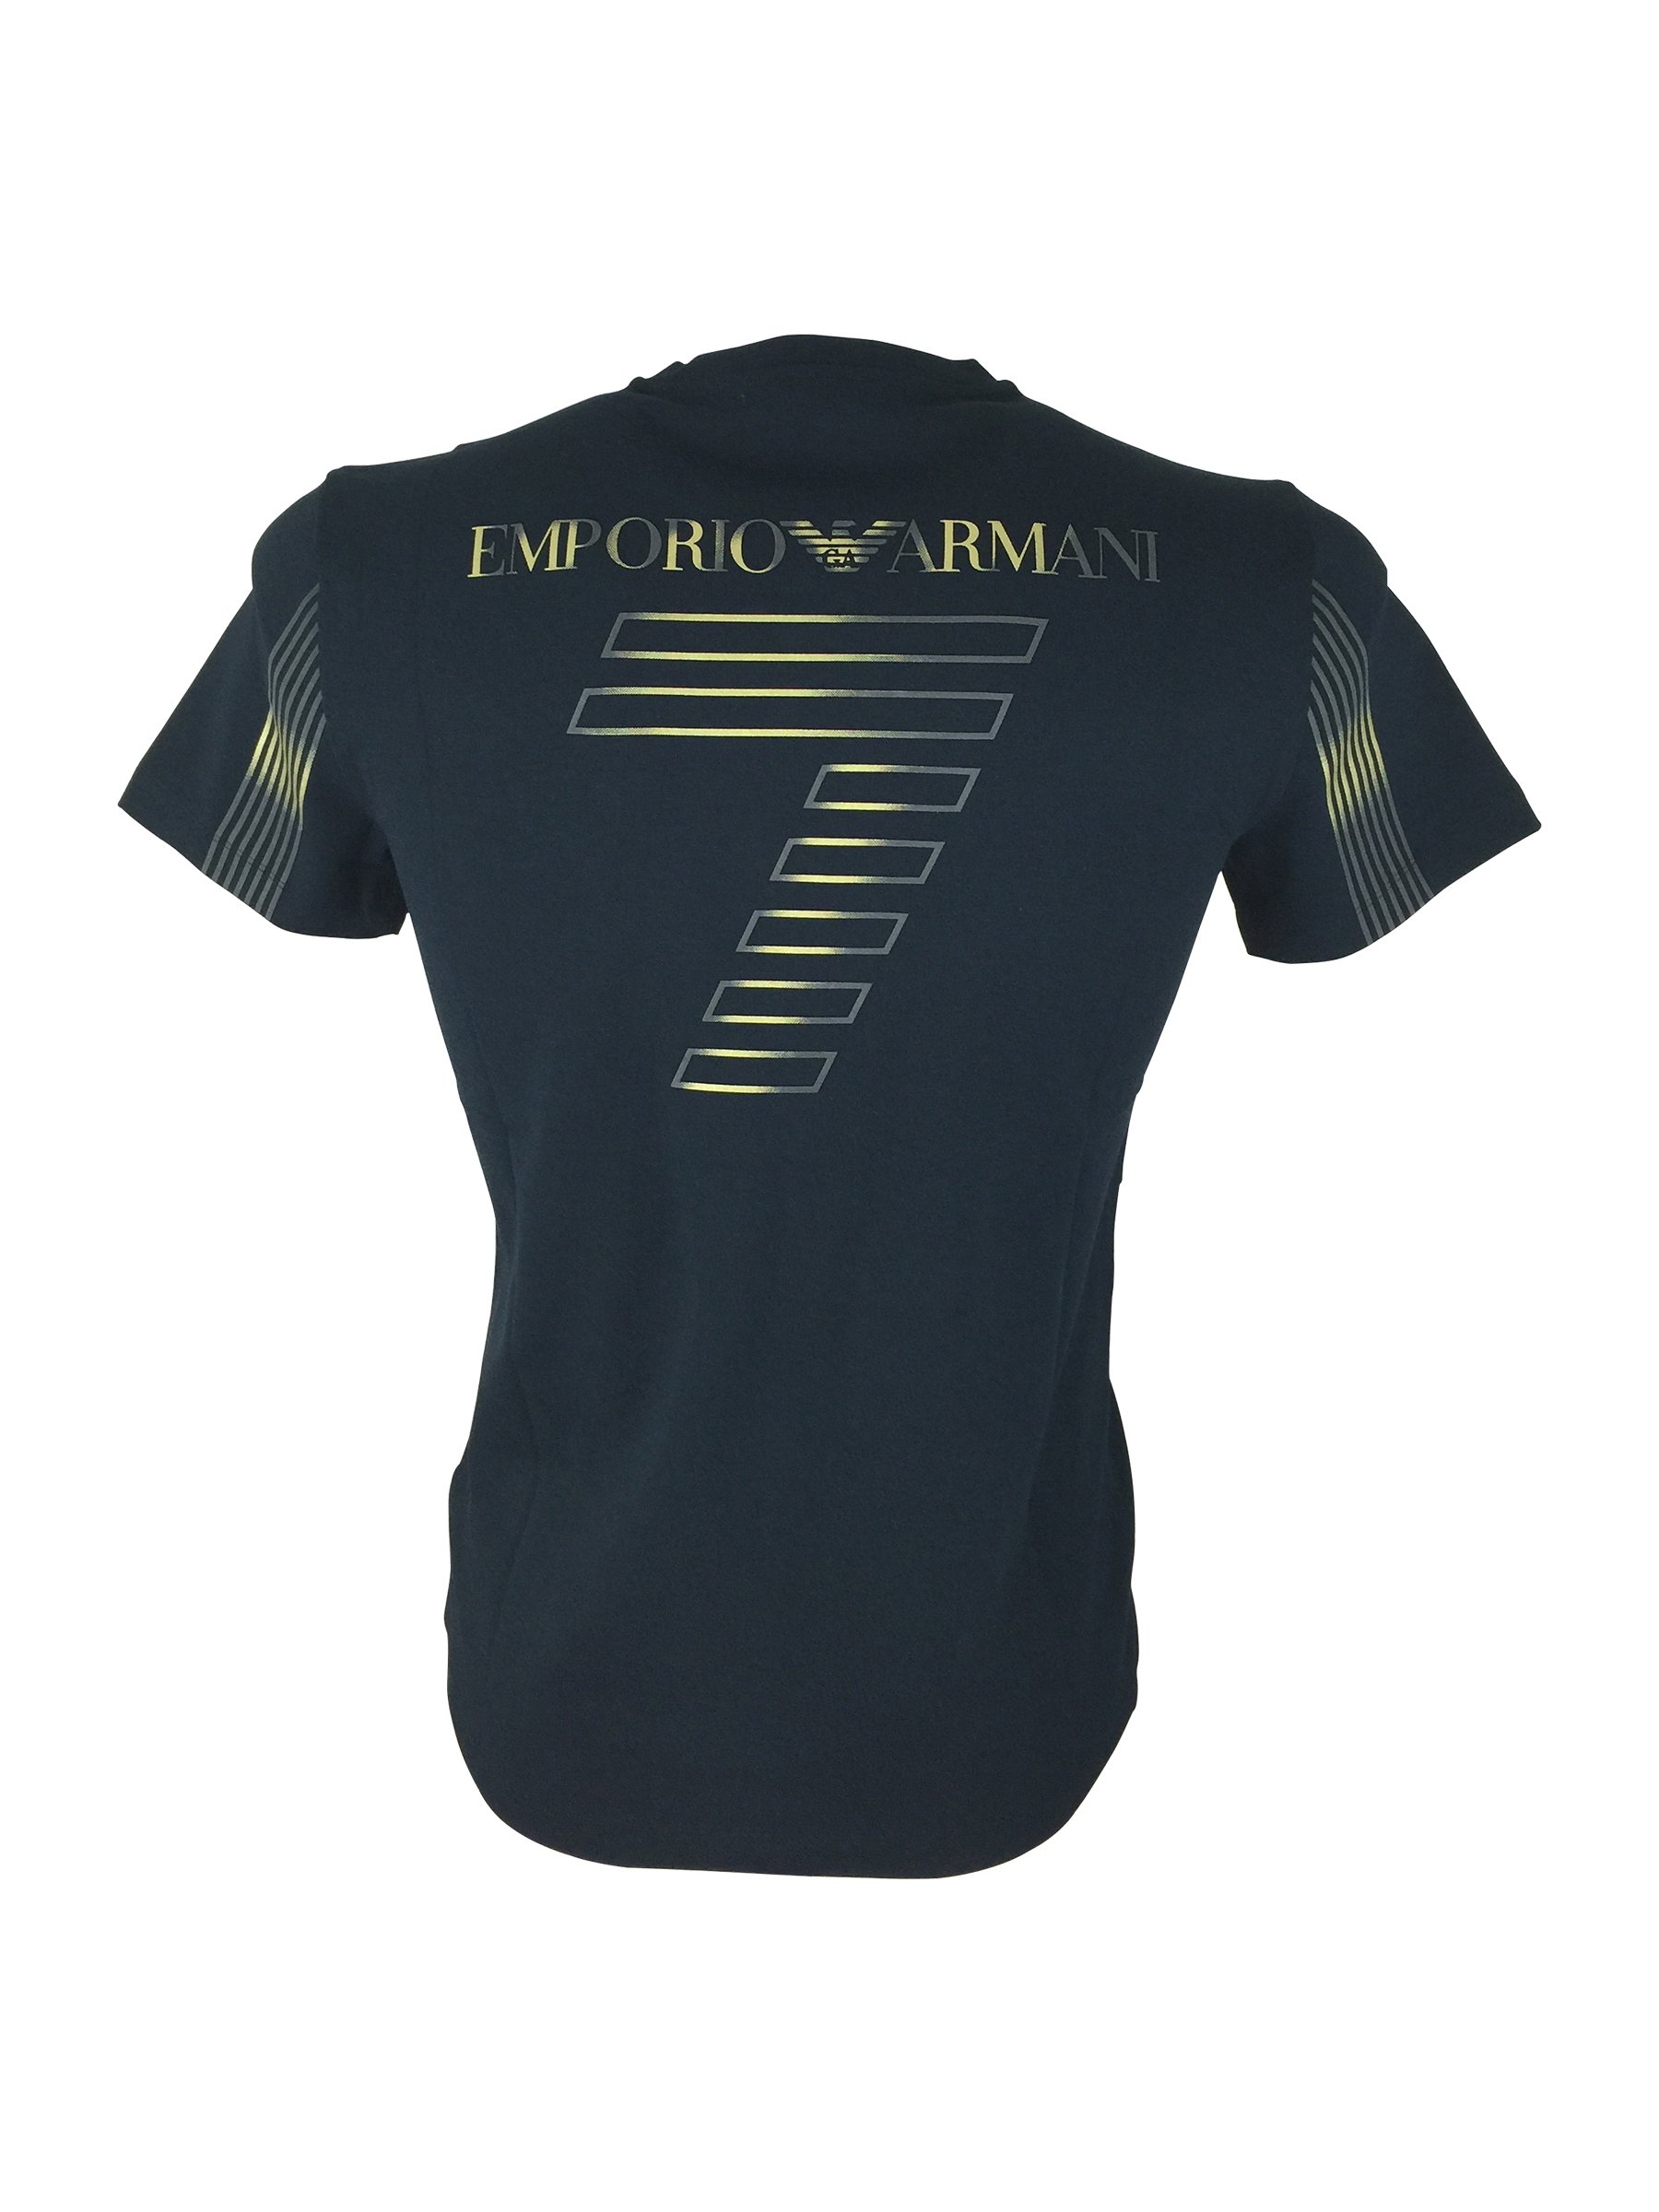 Emporio armani ea7 mens train soccer v neck t shirt tee for Tahari t shirt mens